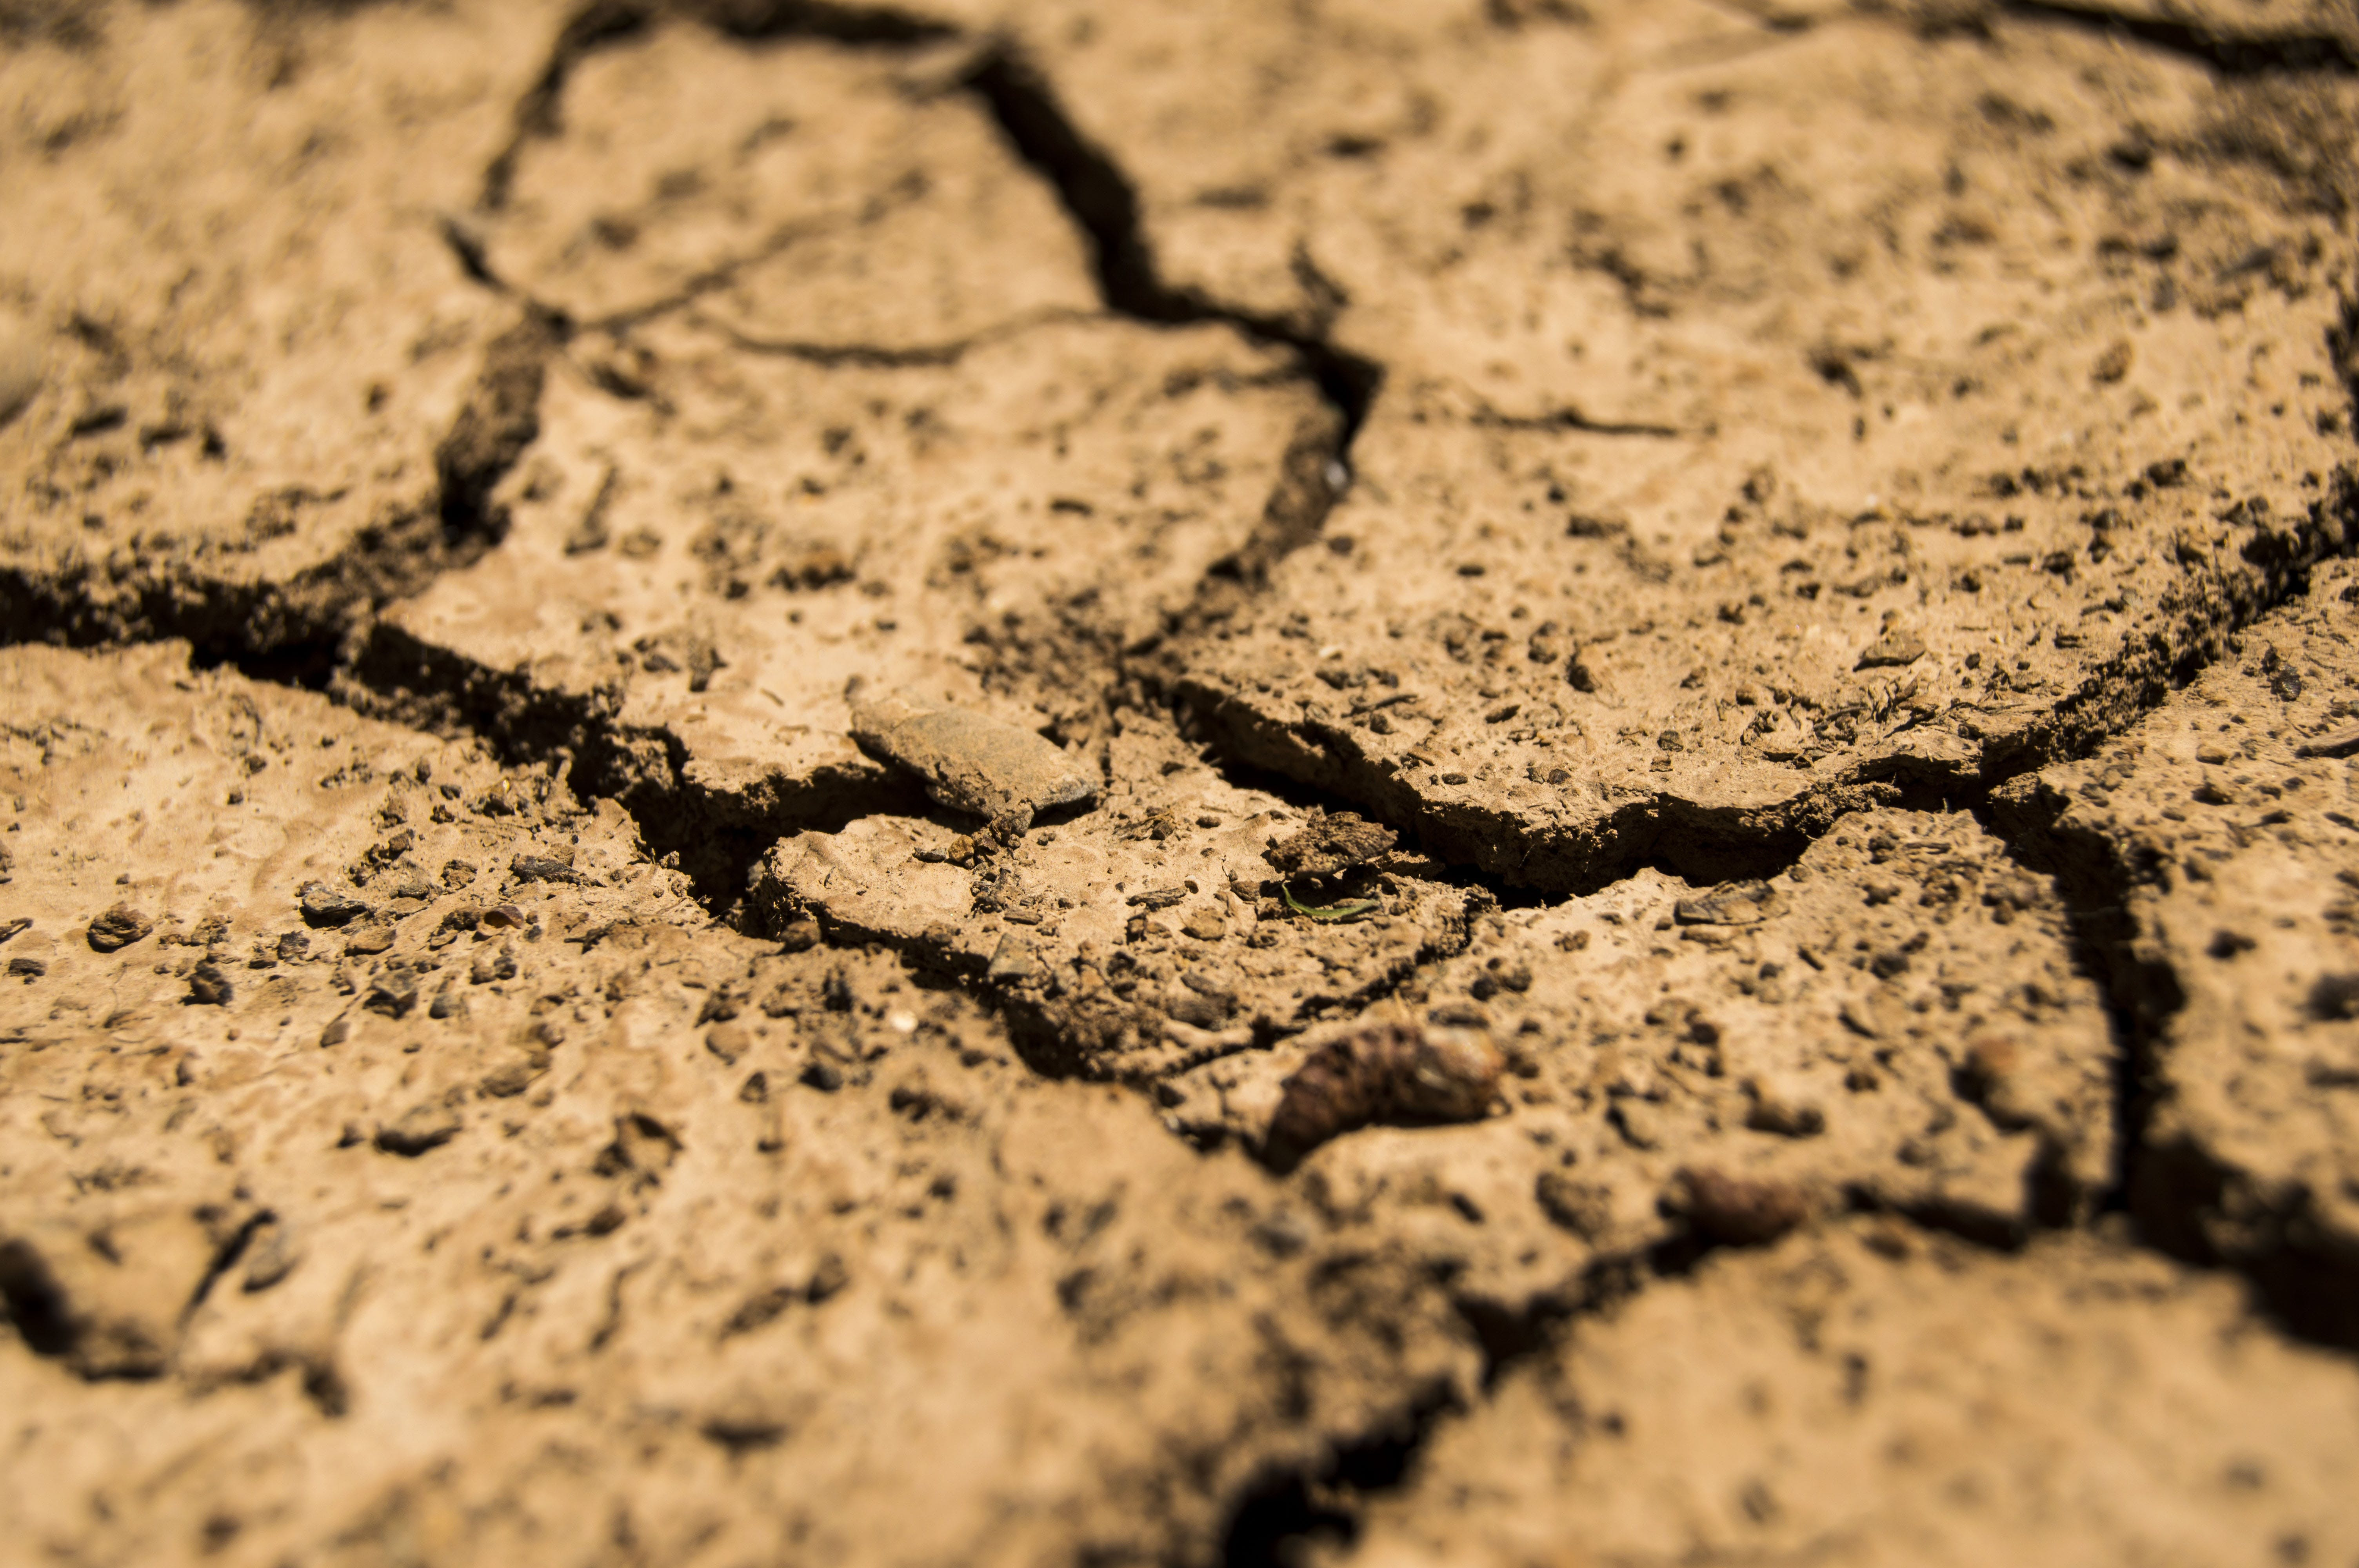 Shallow Focus Photography of Dried Soil